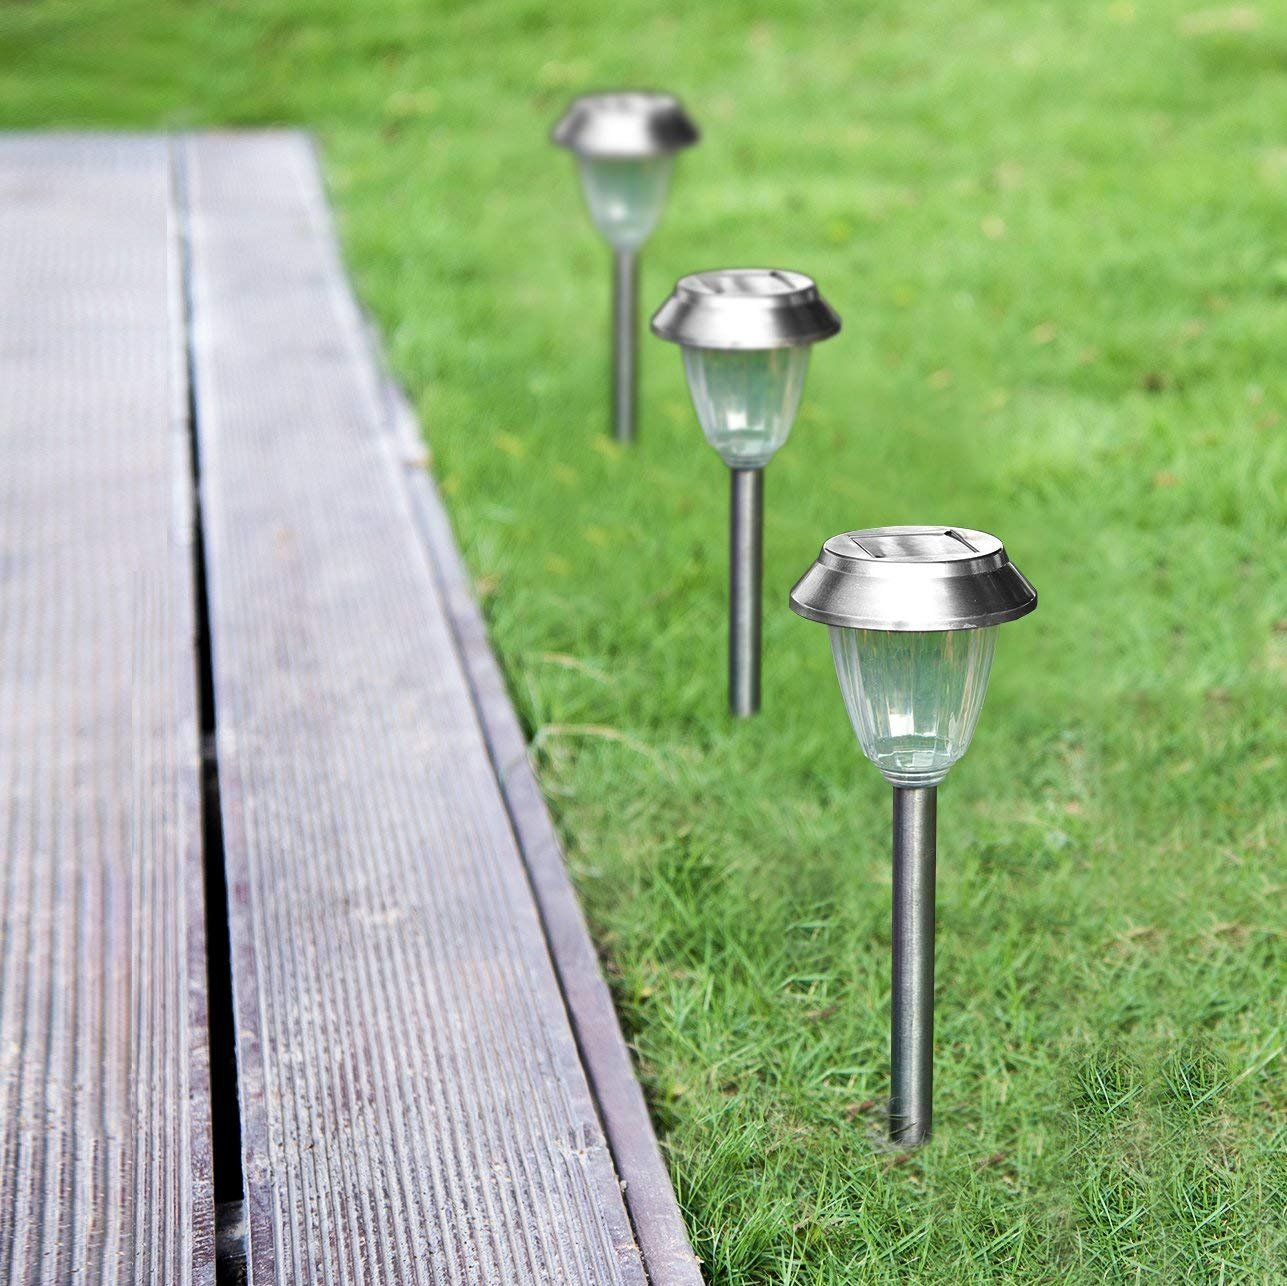 Solar Pathways Lights Makes Garden Path & Flower Beds Look Great; Drunze 4PCS Stainless Steel Patio Lighting, Easy NO-WIRE Installation;Any-Weather/Water-Resistant